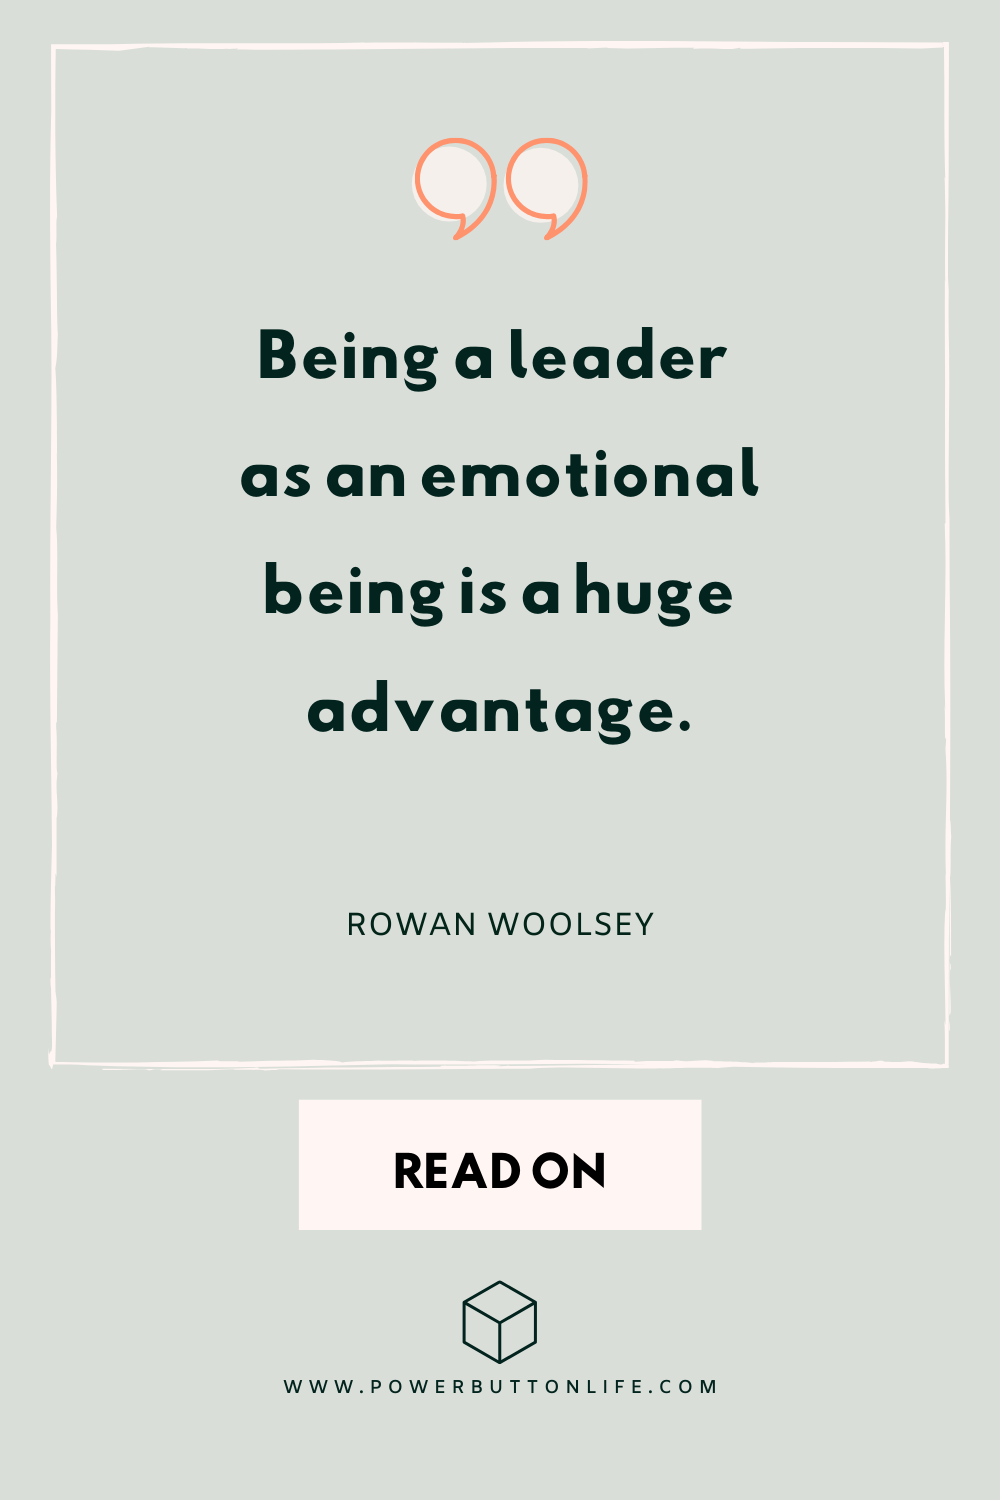 the advantages of being a sensitive leader, the advantages of being an empathetic leader